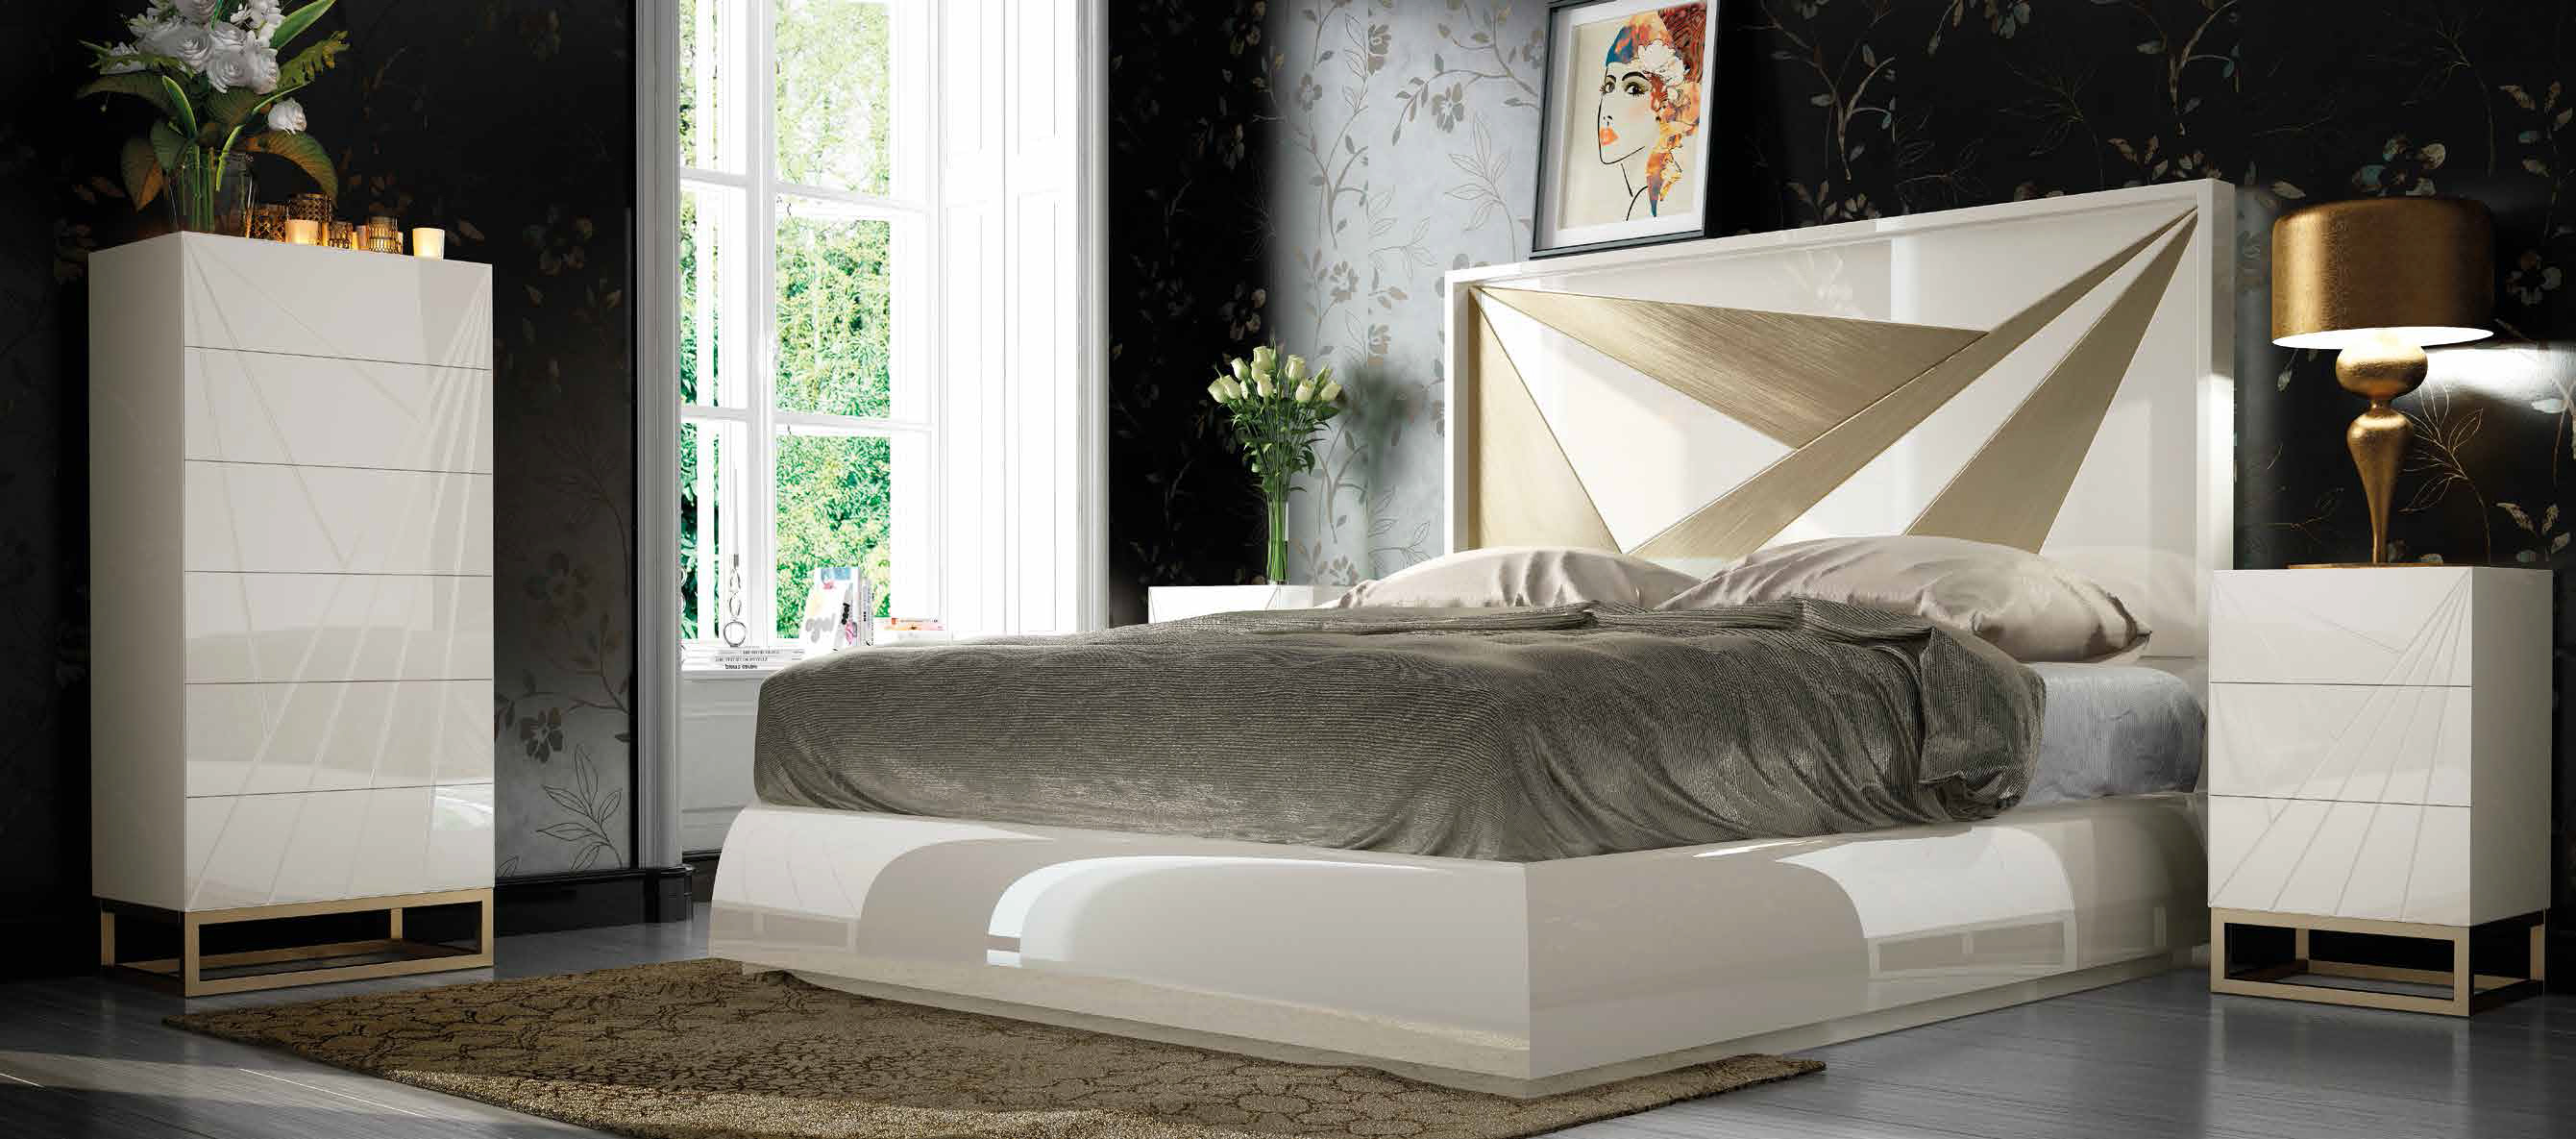 Brands Franco Furniture Bedrooms vol1, Spain DOR 15